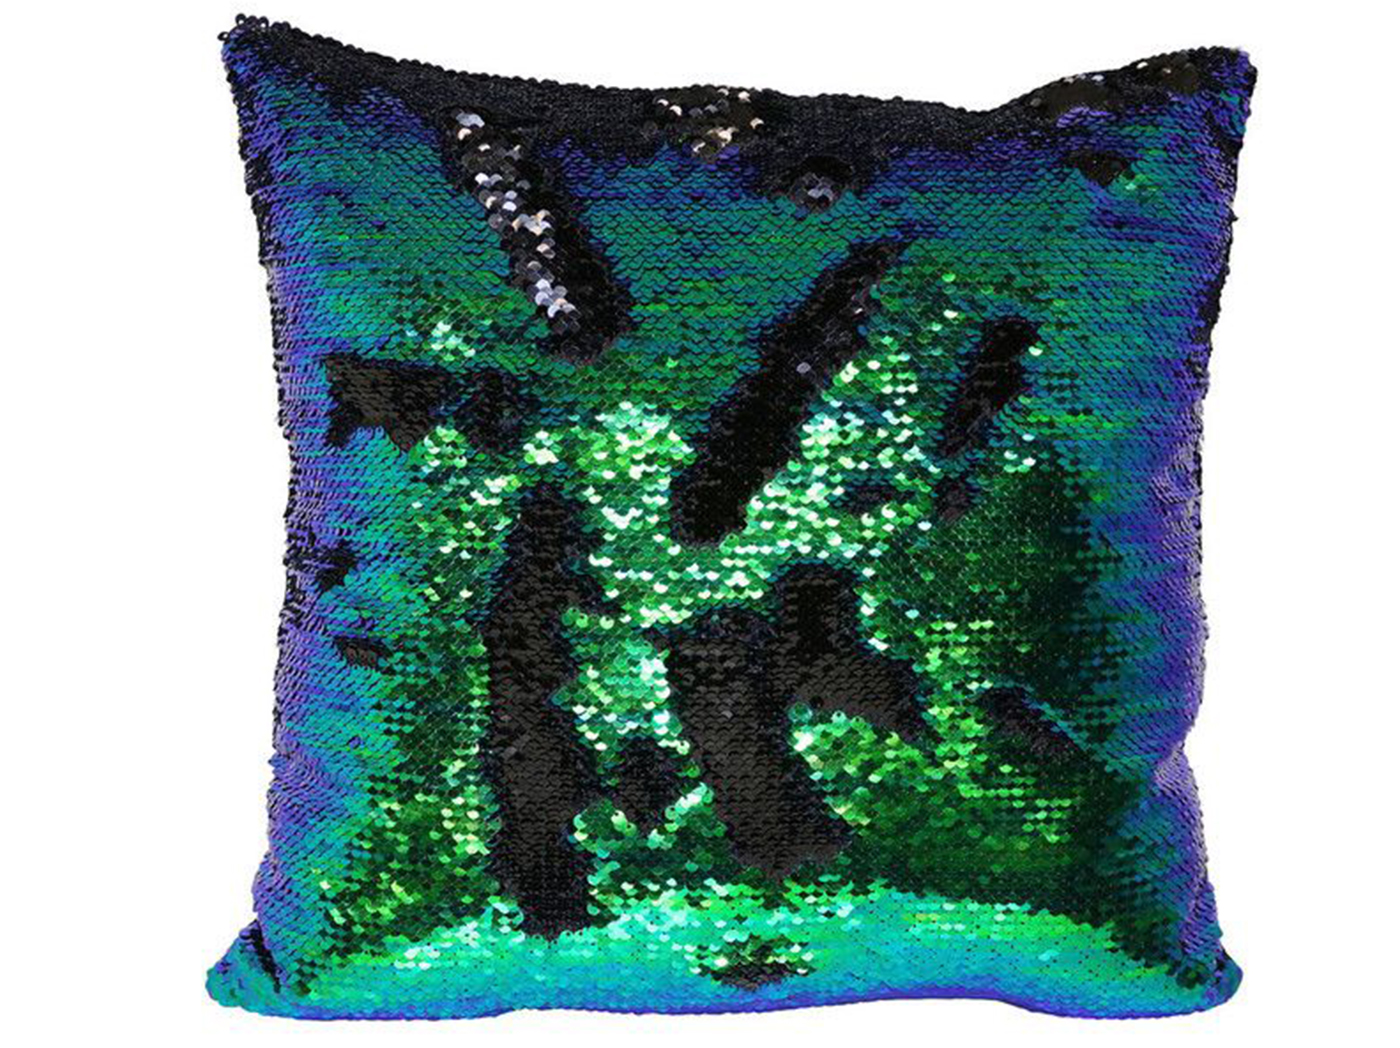 Green And Blue Mermaid Pillow 18""